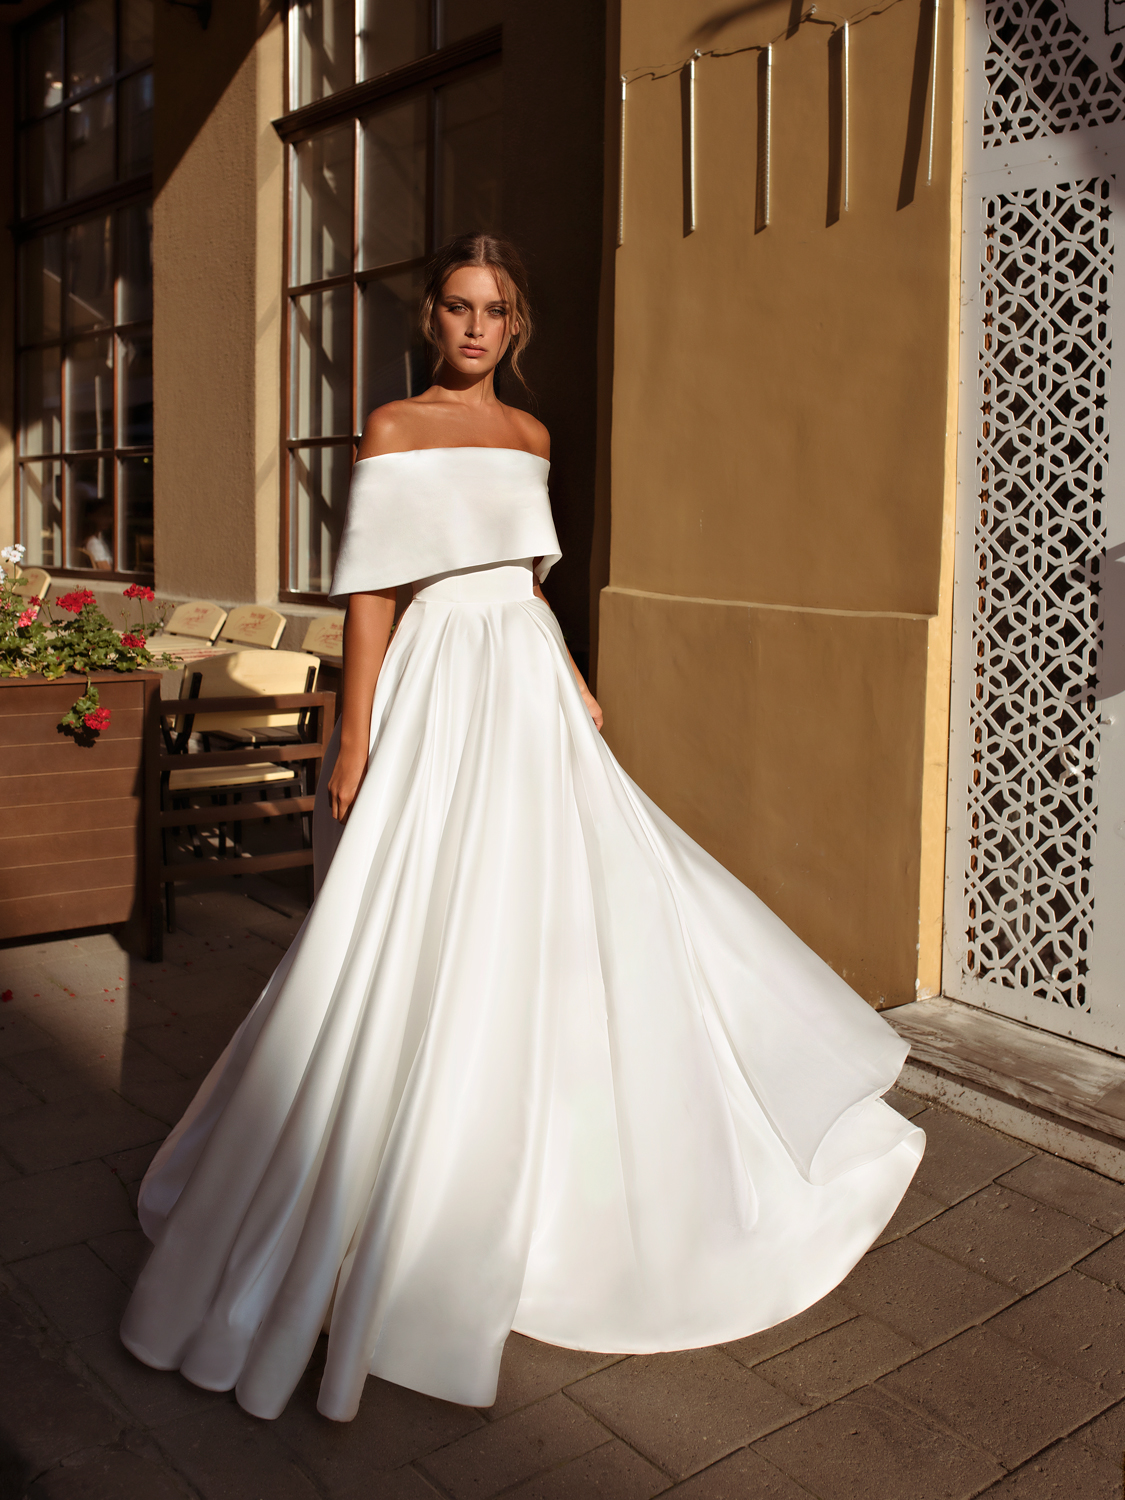 liri_designer_Wedding_Dress_nicola.jpg